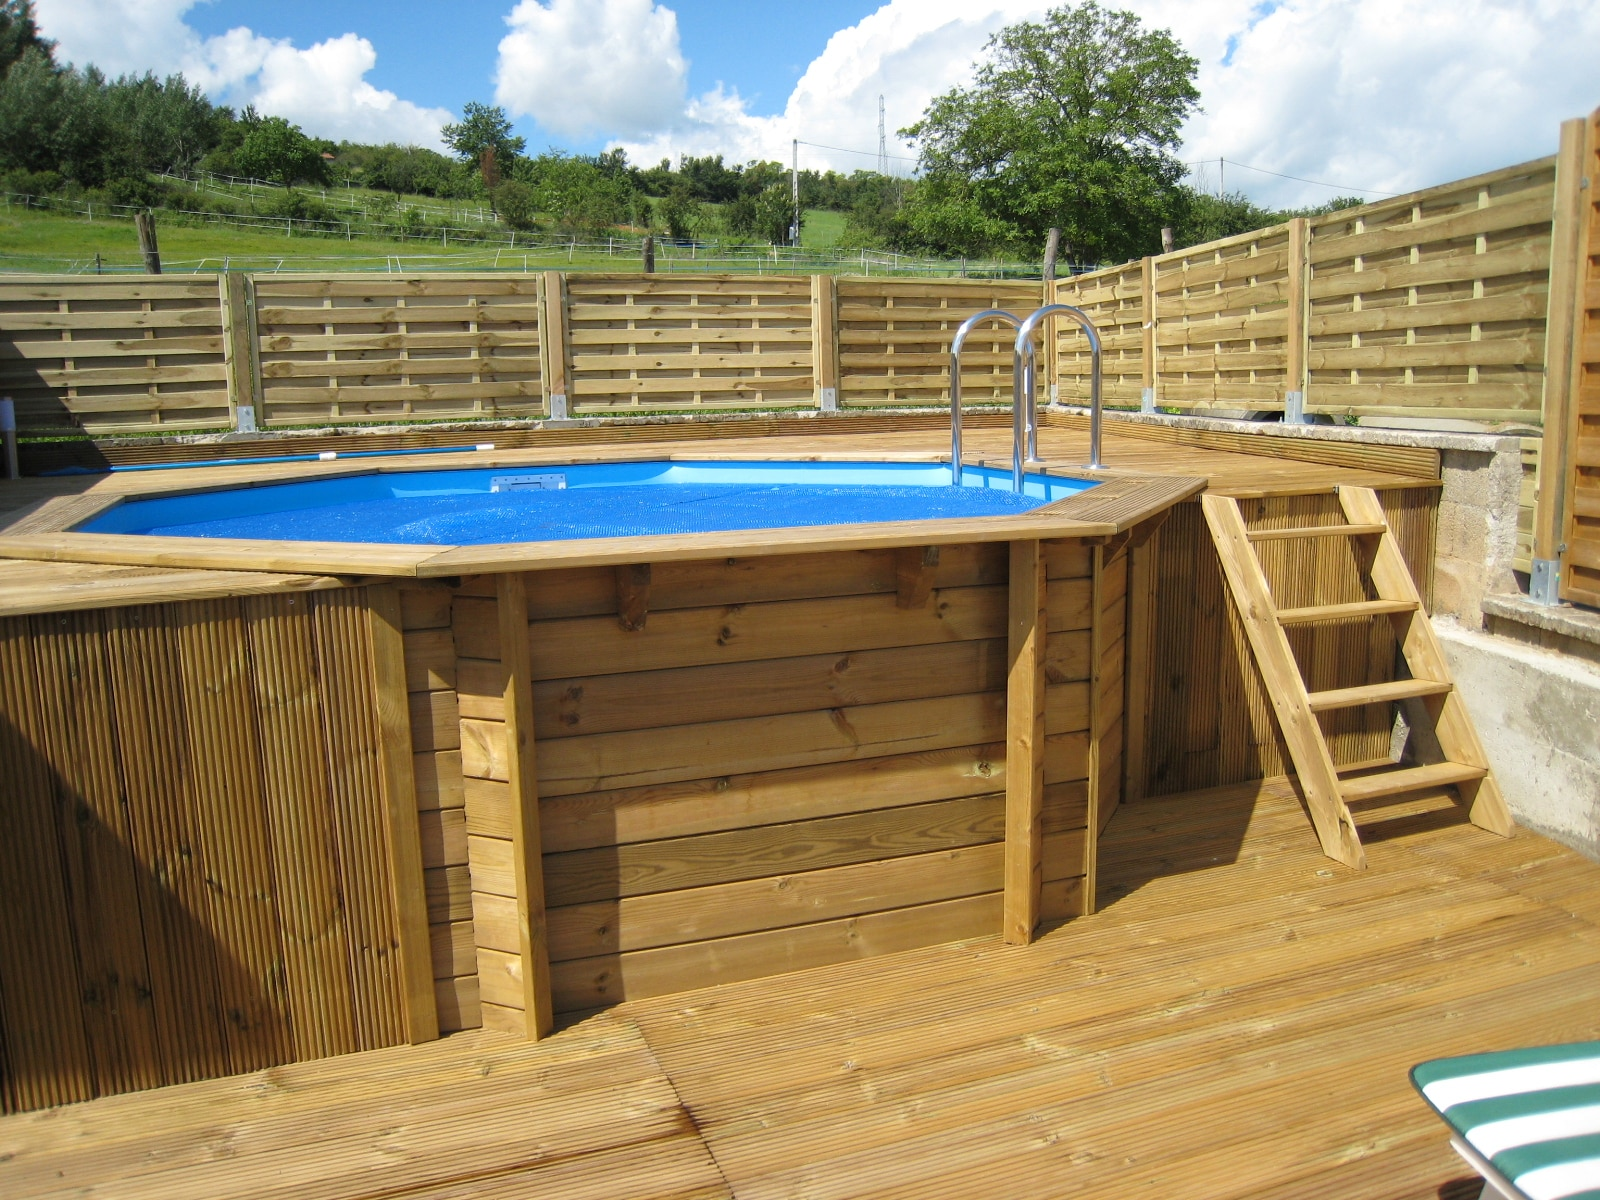 Comment monter une piscine en bois for Piscine hors sol declaration